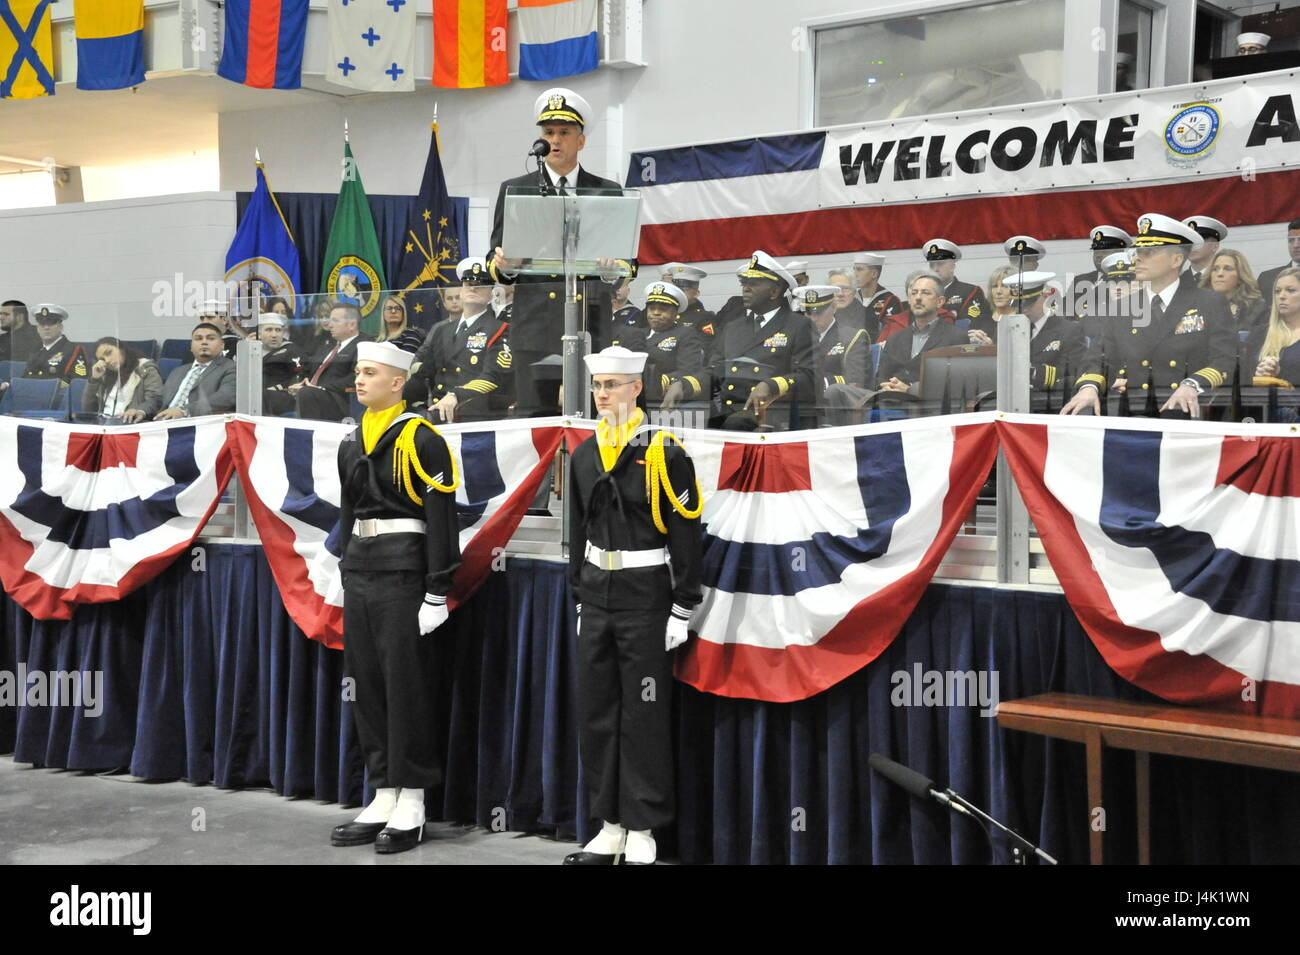 161216-N-CM124-342  Chief of Naval Personnel Robert P. Burke speaks to the guests at the Pass-In-Review ceremony - Stock Image